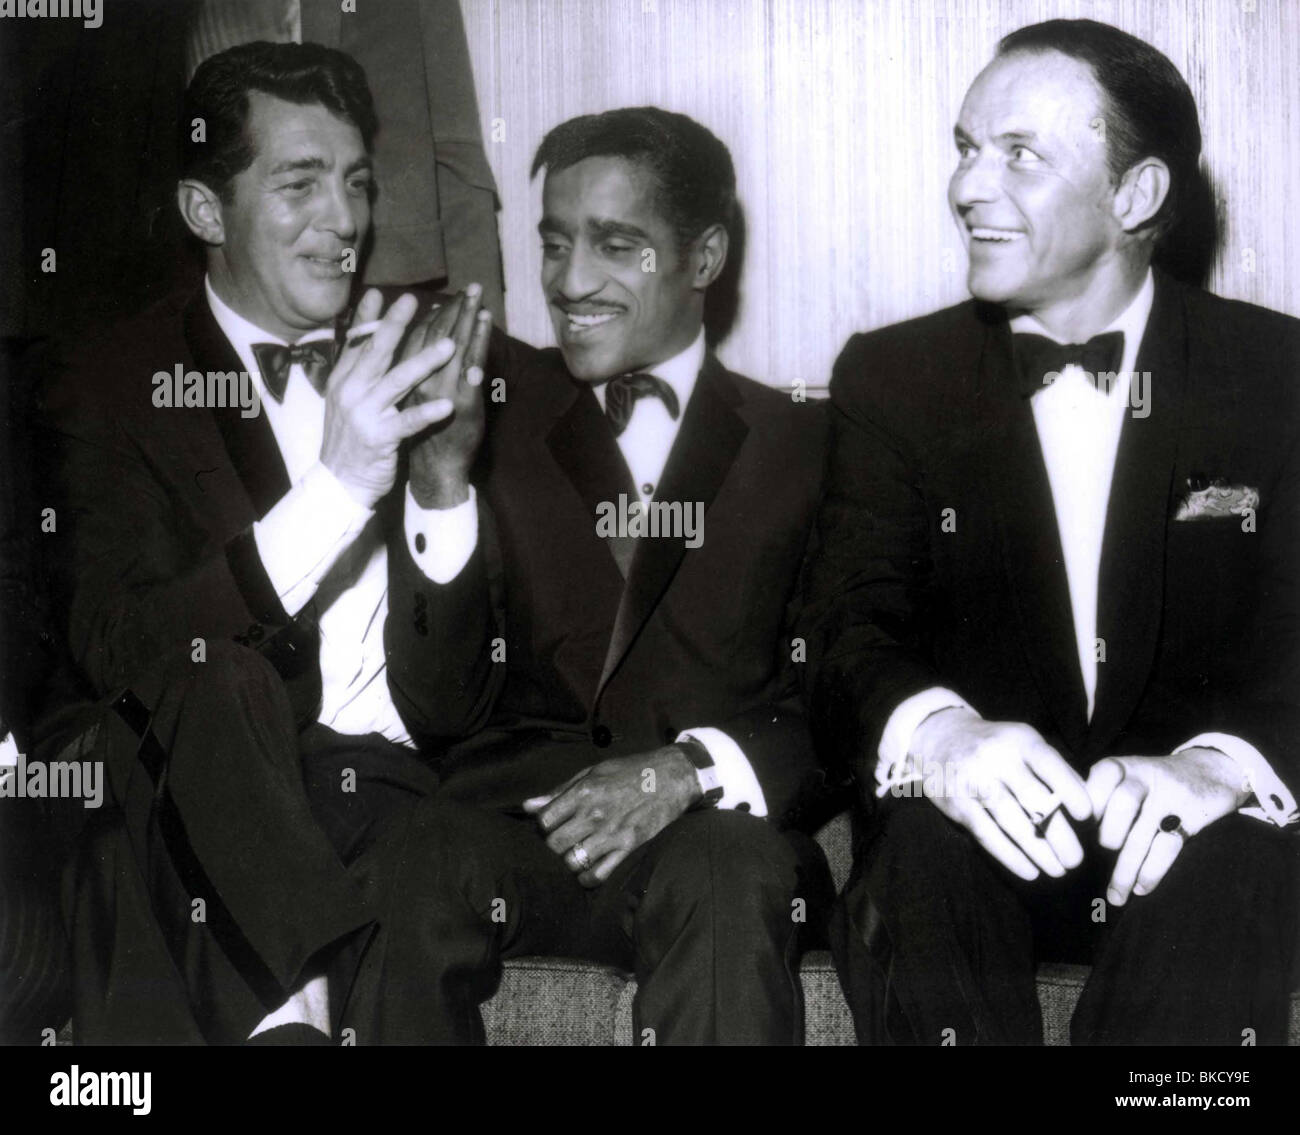 frank sinatra portrait dean martin sammy davis jr frank sinatra the stock photo royalty free. Black Bedroom Furniture Sets. Home Design Ideas